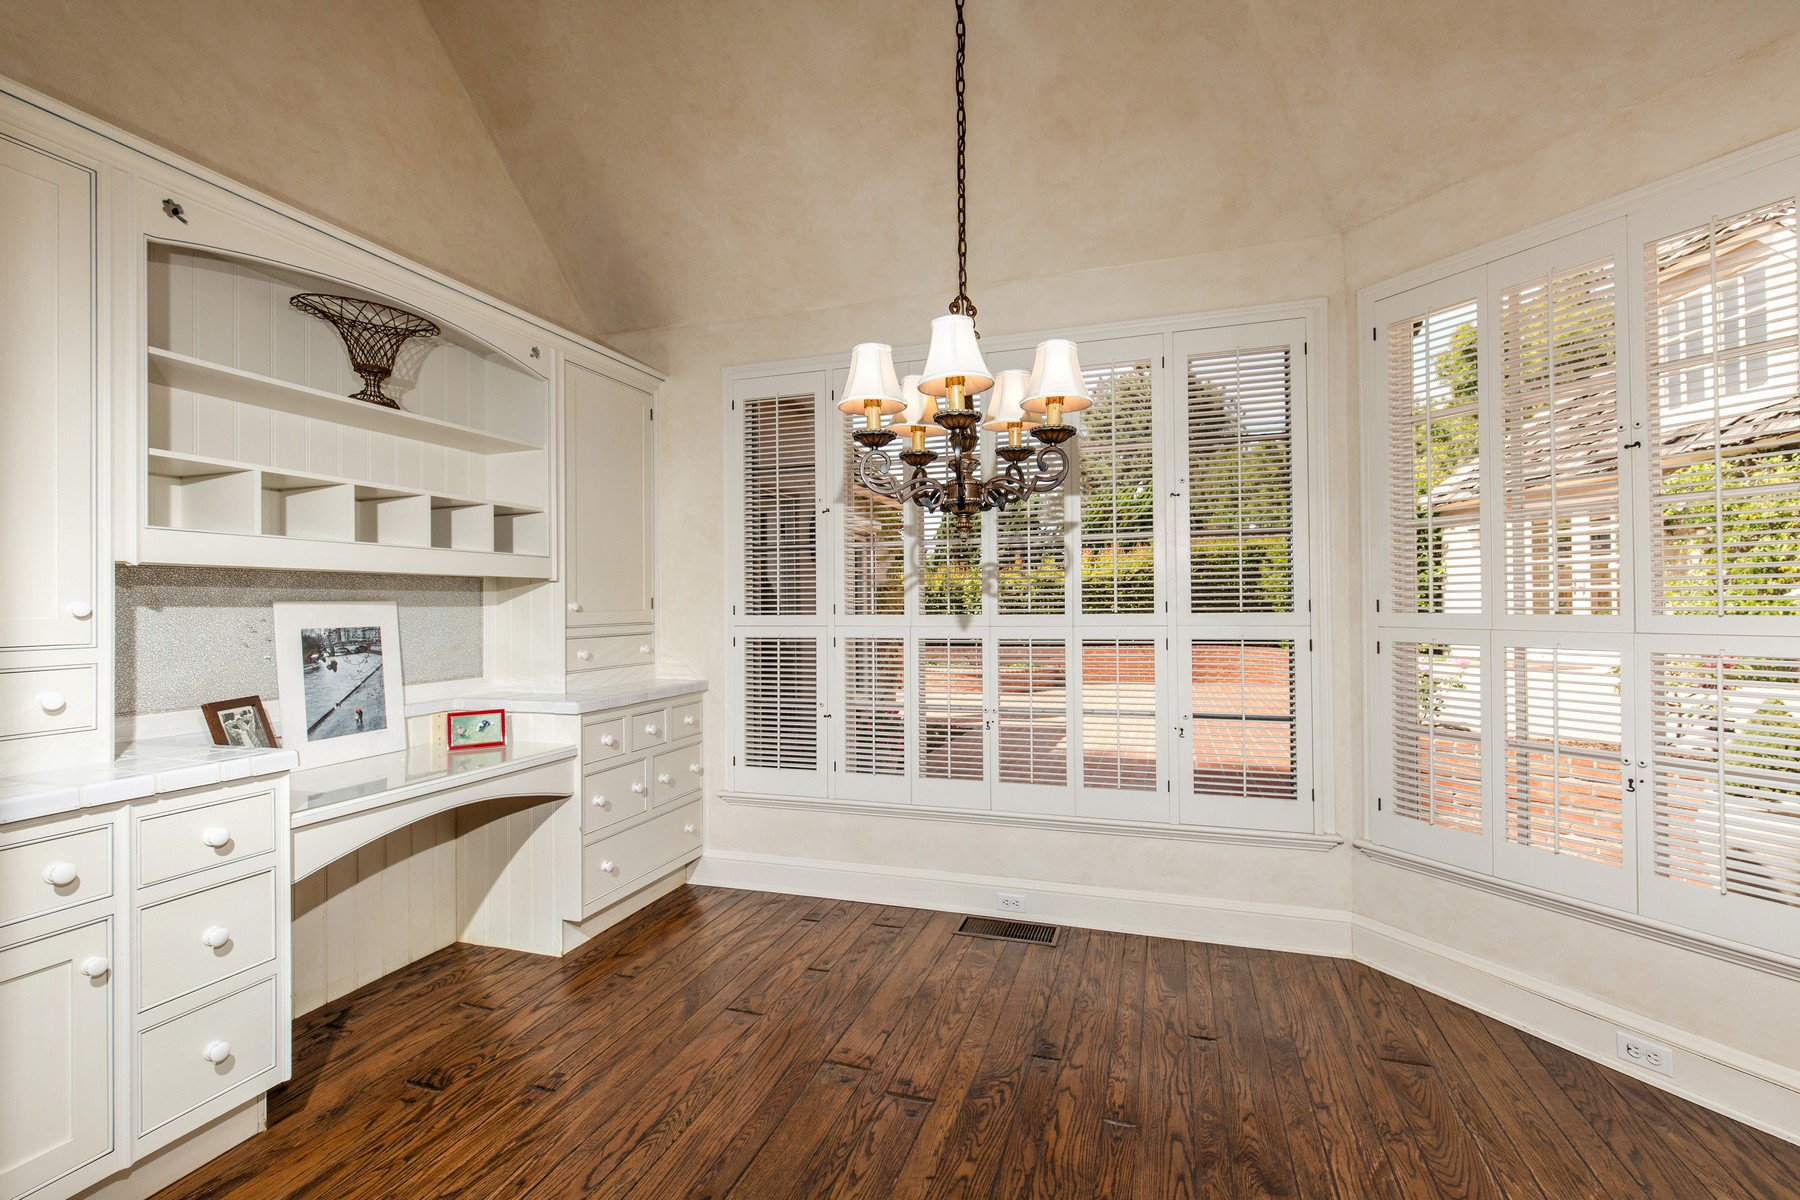 Additional photo for property listing at 6325 Muirlands Drive  La Jolla, California 92037 Estados Unidos